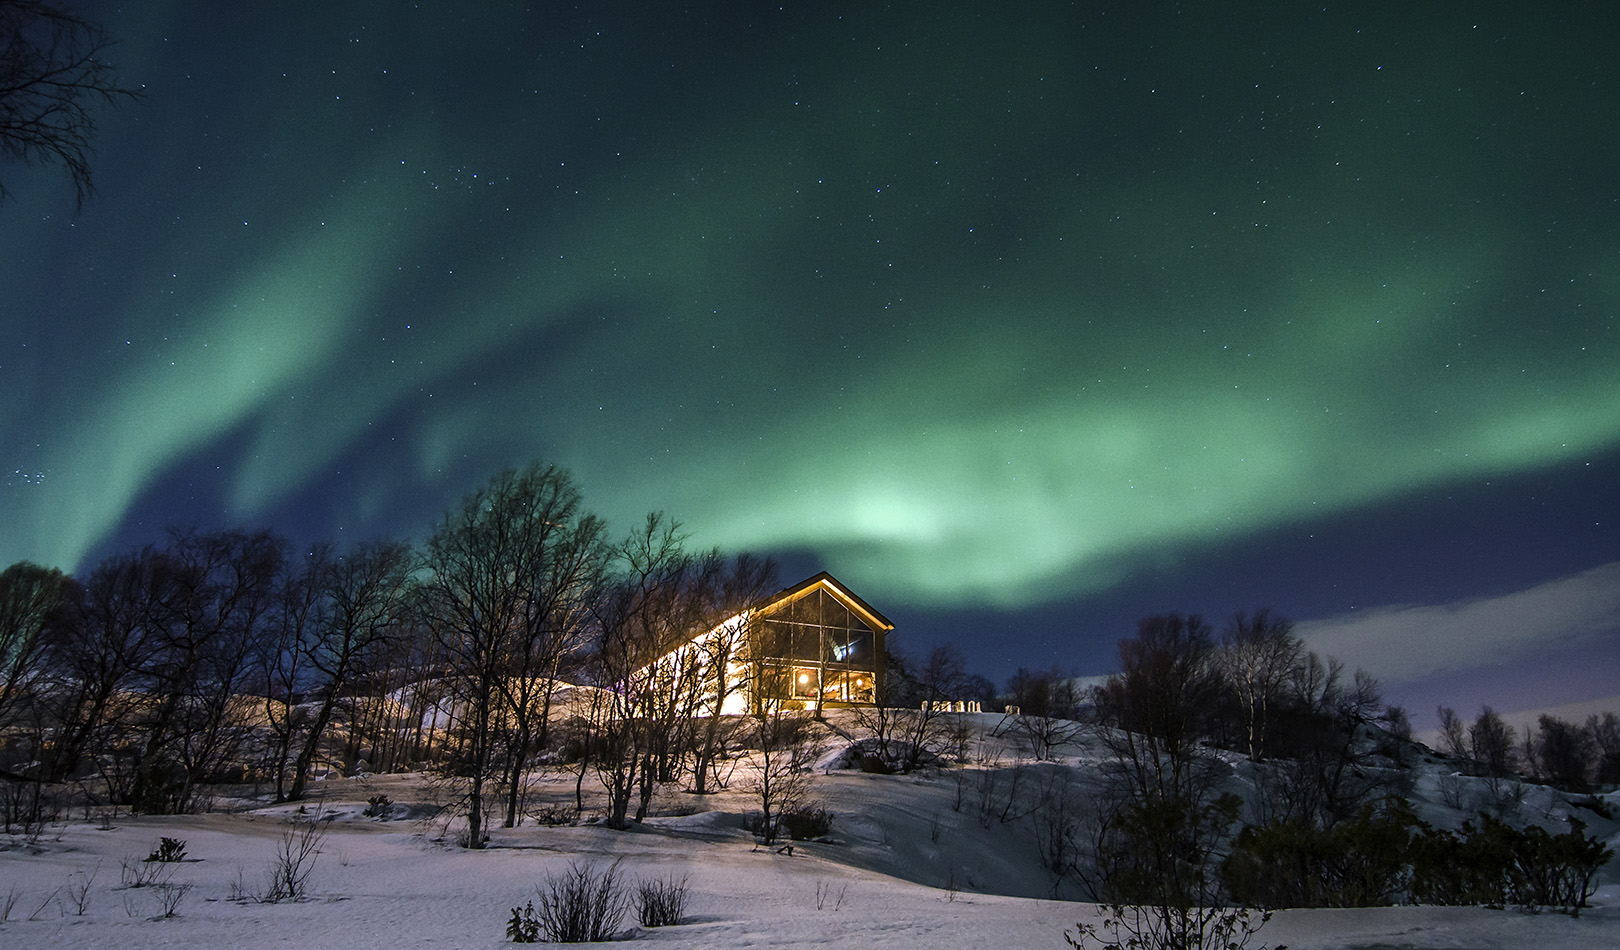 Northern light over a house with snowy landscape.